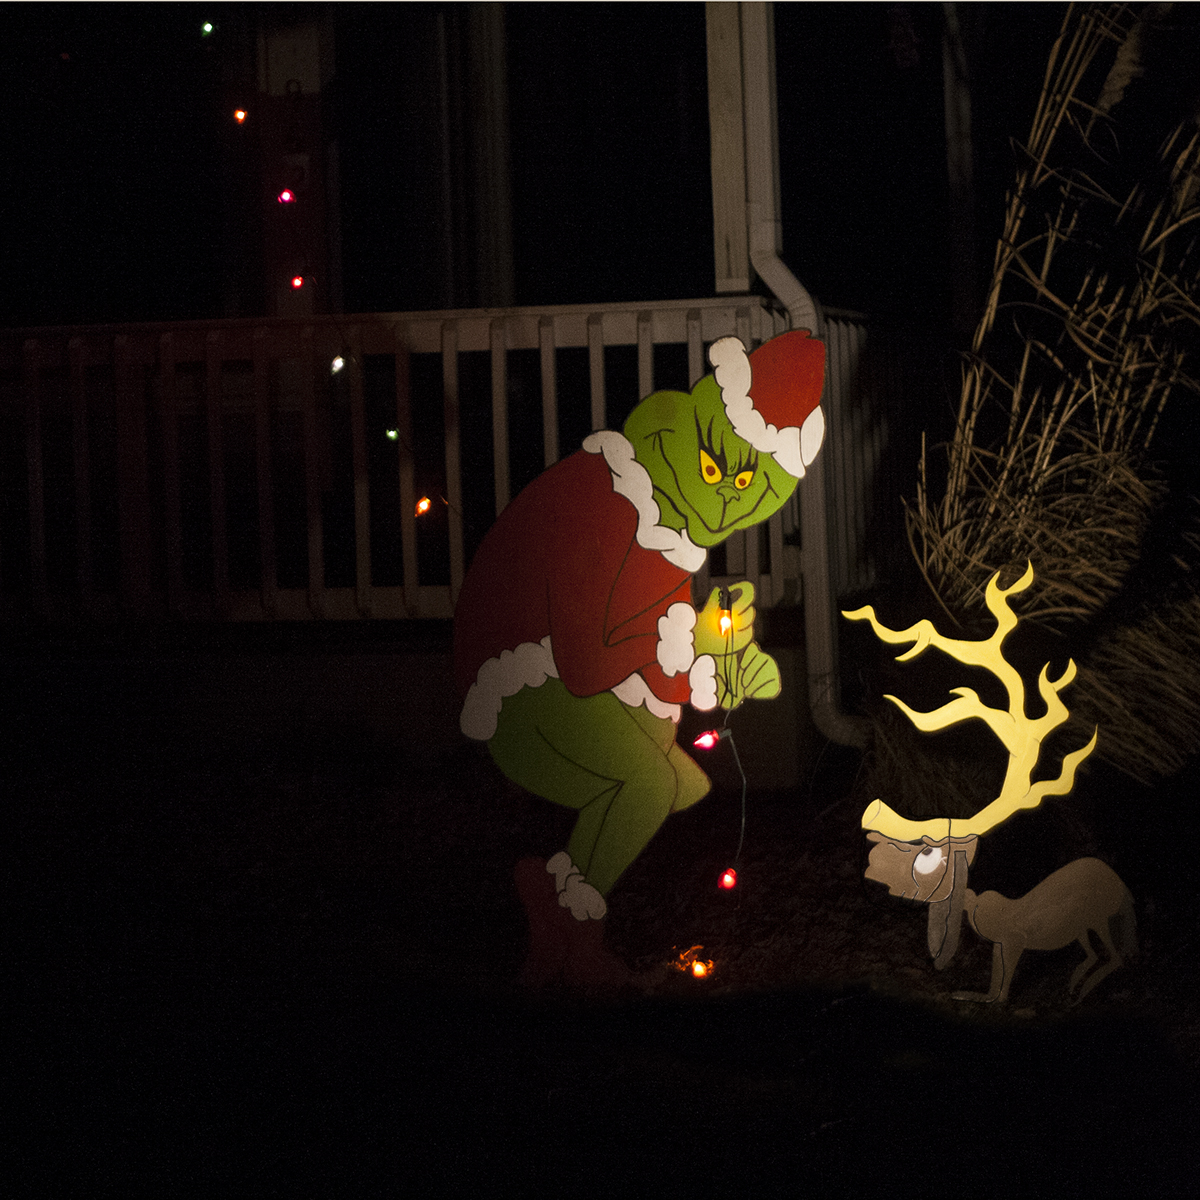 The Grinch S Dog Max Stealing Christmas Lights Wiley Concepts